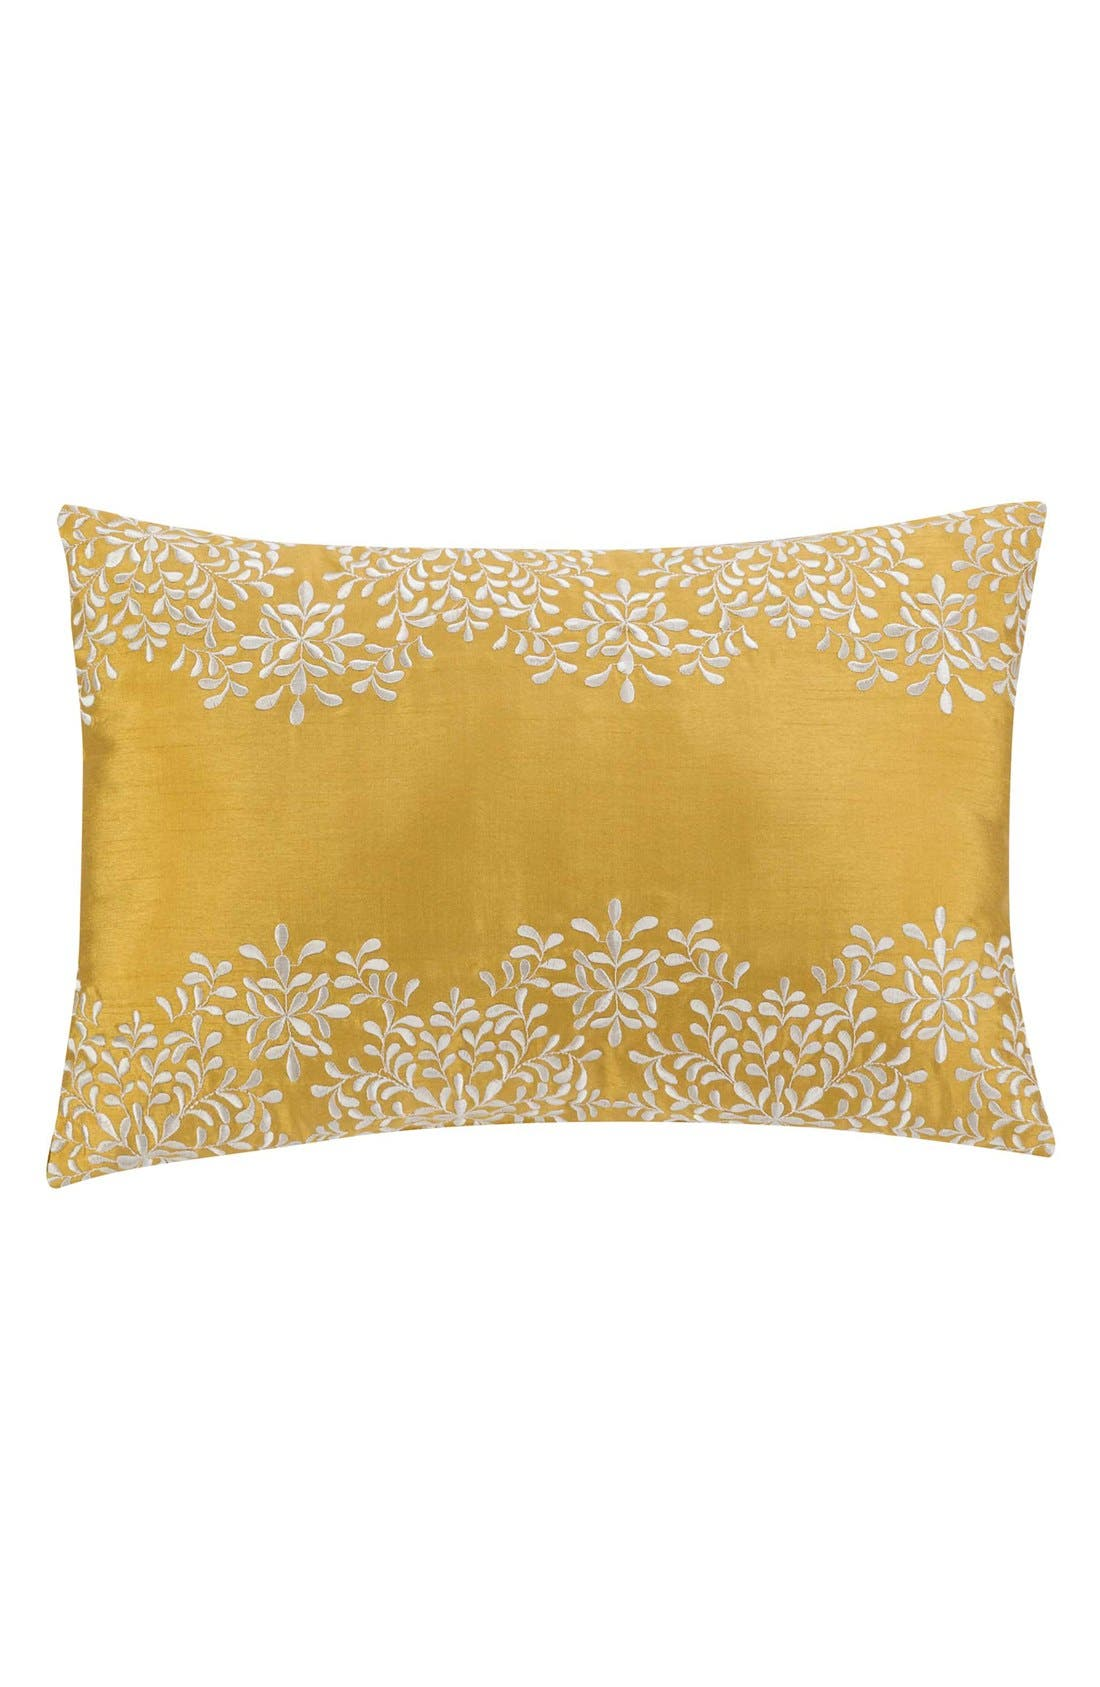 Alternate Image 1 Selected - KAS Designs 'Octavia' Embroidered Accent Pillow